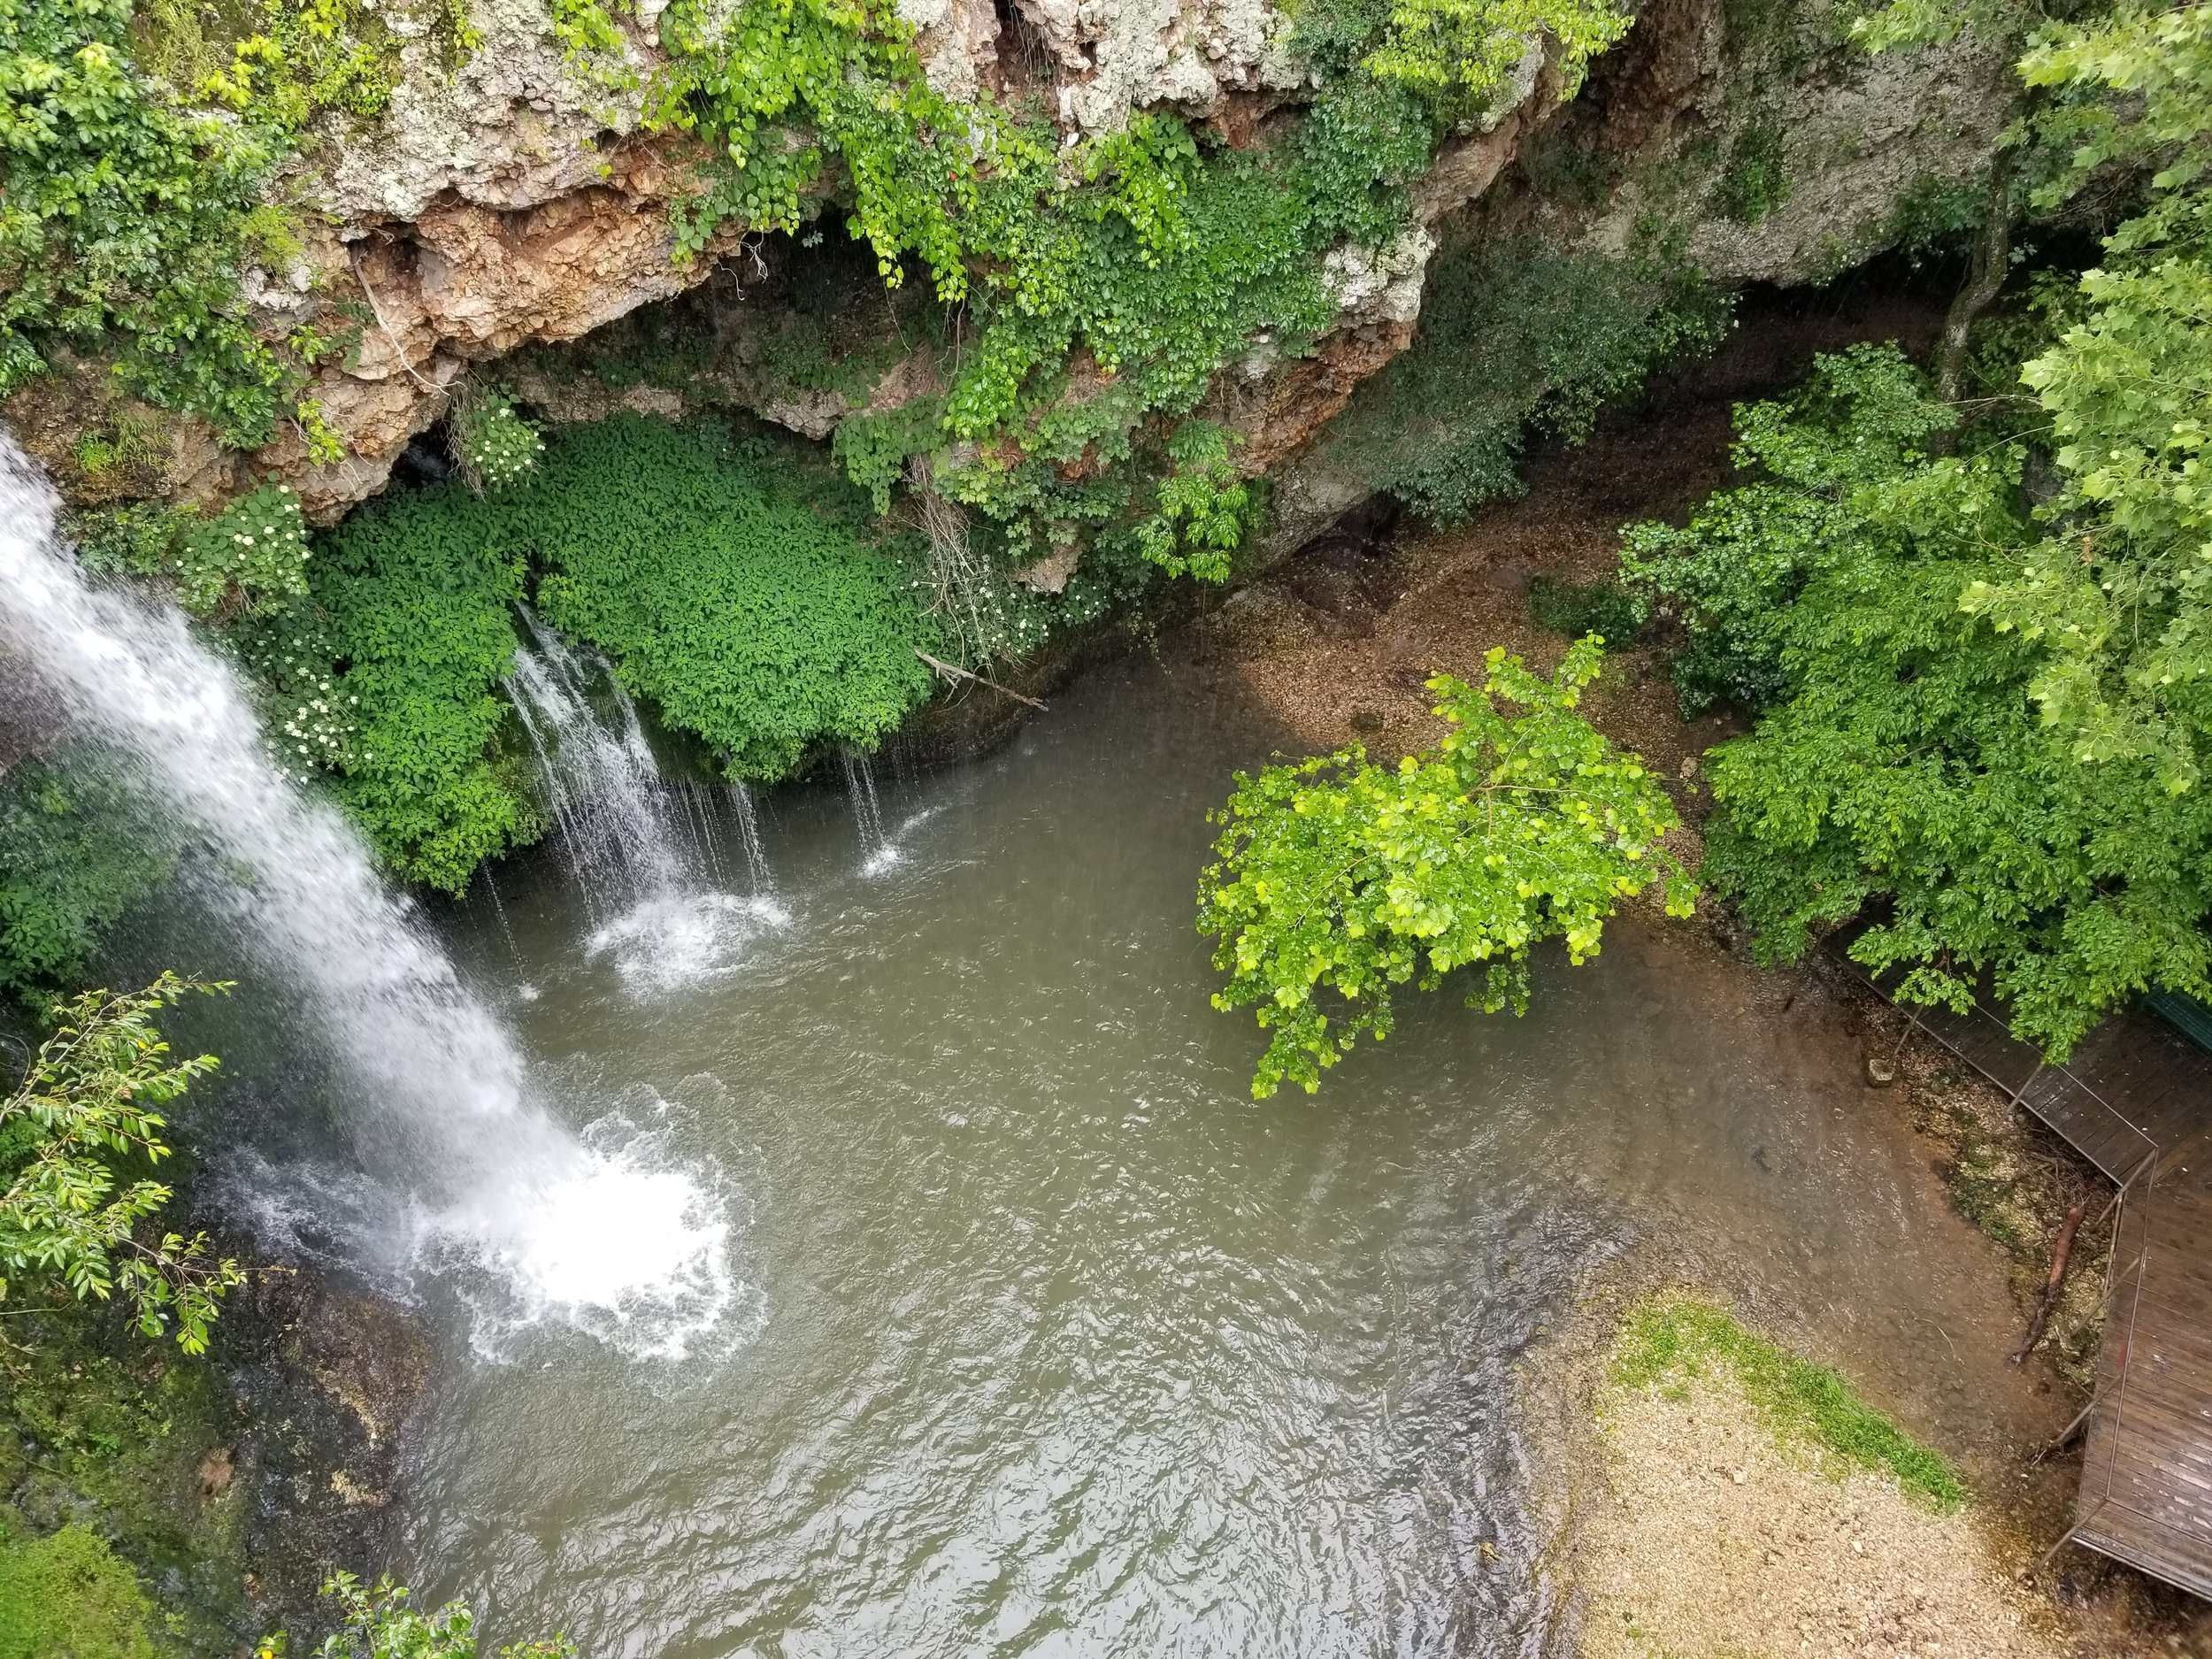 Looking down at the waterfall